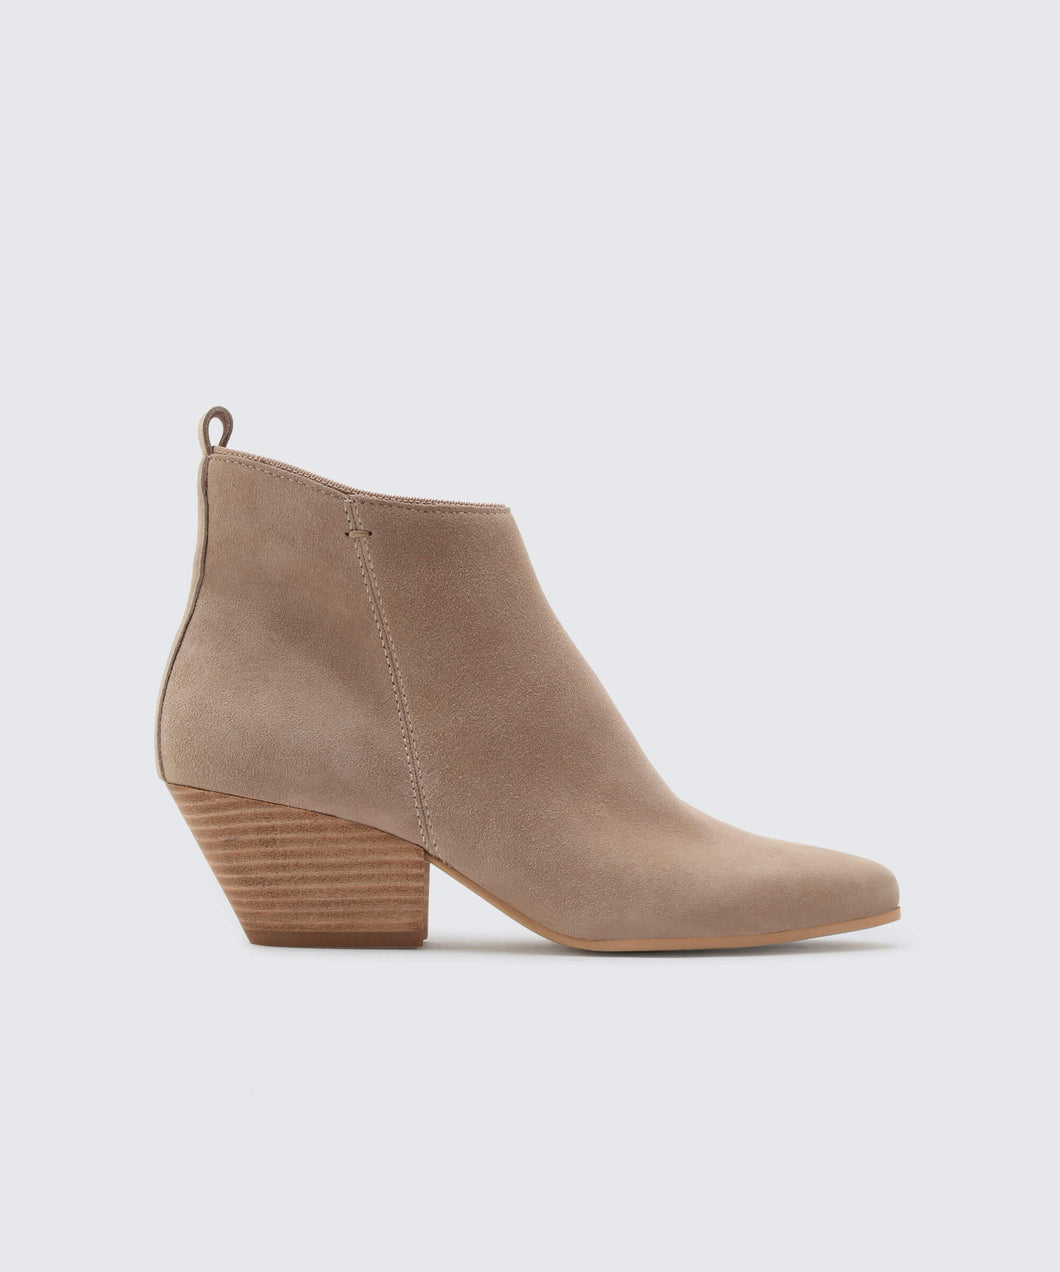 PEARSE BOOTIES DK TAUPE -   Dolce Vita